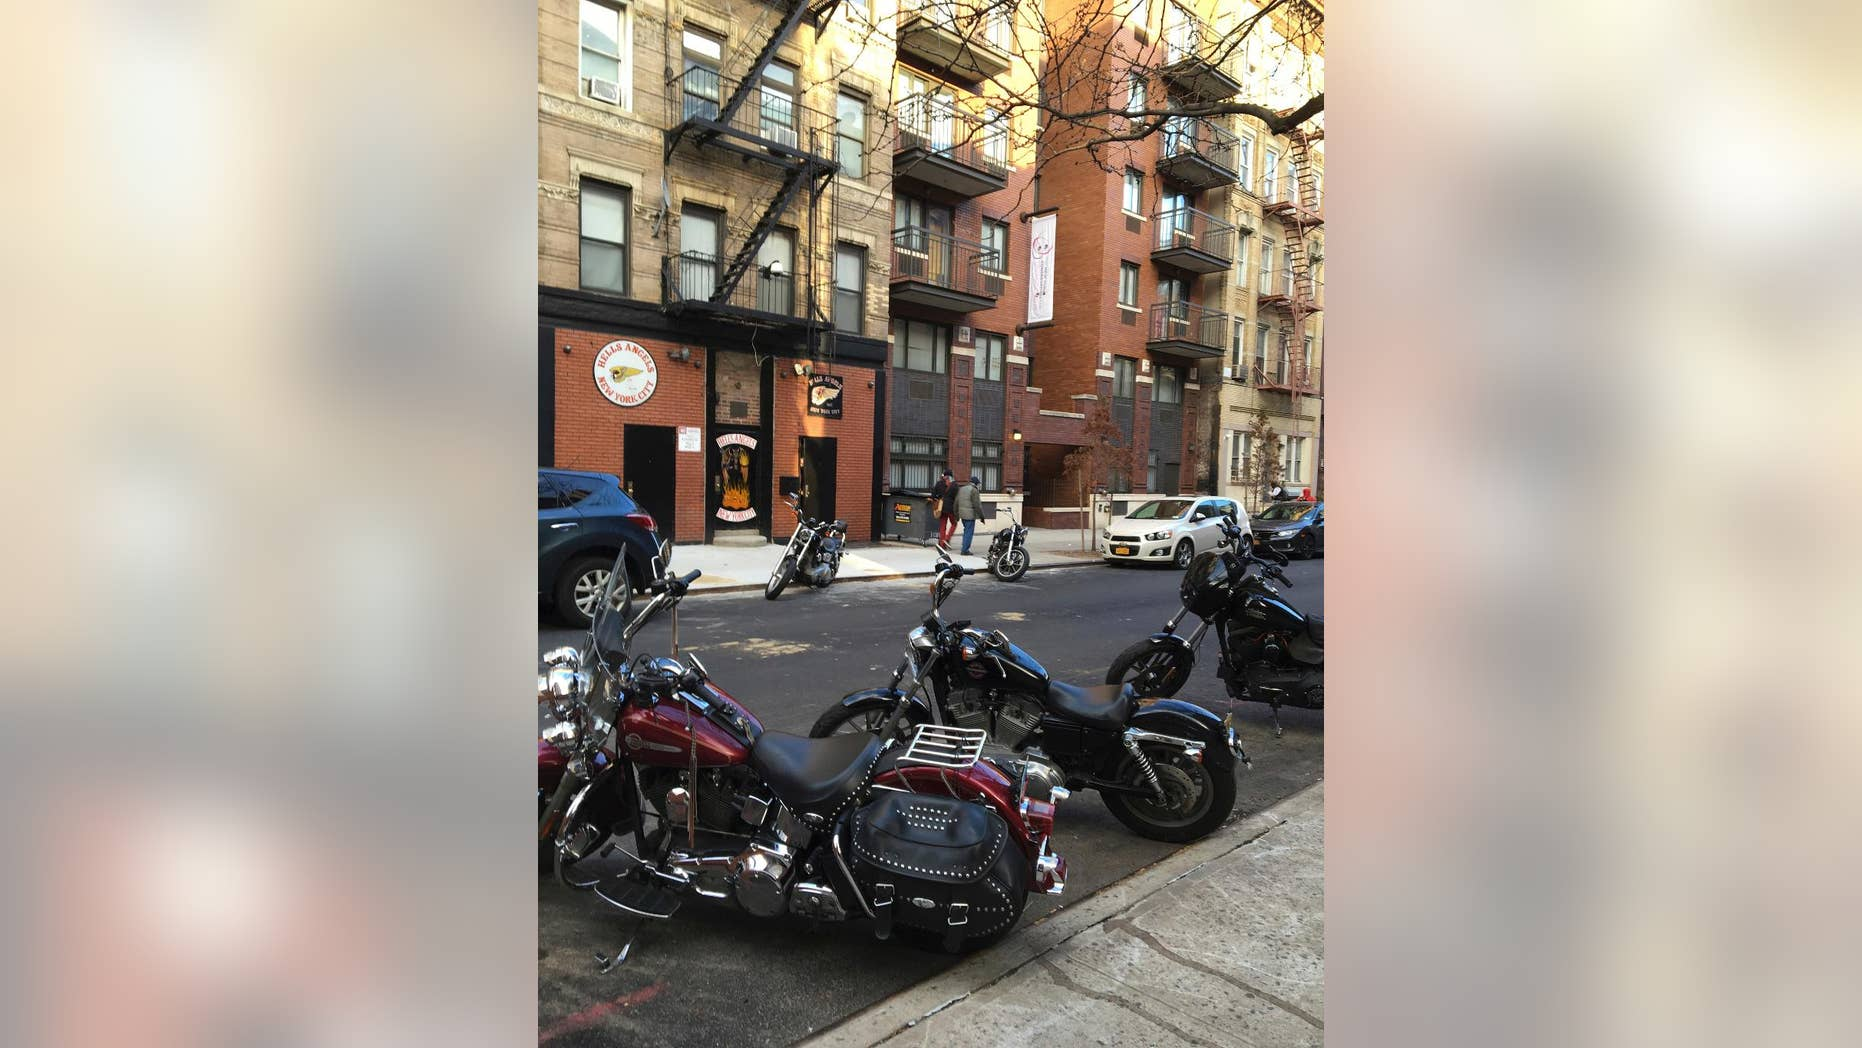 FILE- In this Dec. 16, 2016 file photo, motorcycles are parked on the street outside the Hells Angels motorcycle club headquarters in New York. Authorities said that a man affiliated with the Hells Angels was charged Wednesday, Dec. 21, 2016 in a shooting sparked by a dispute over a parking spot outside the motorcycle club's headquarters on Dec. 11. (AP Photo/Tom Hays, File)